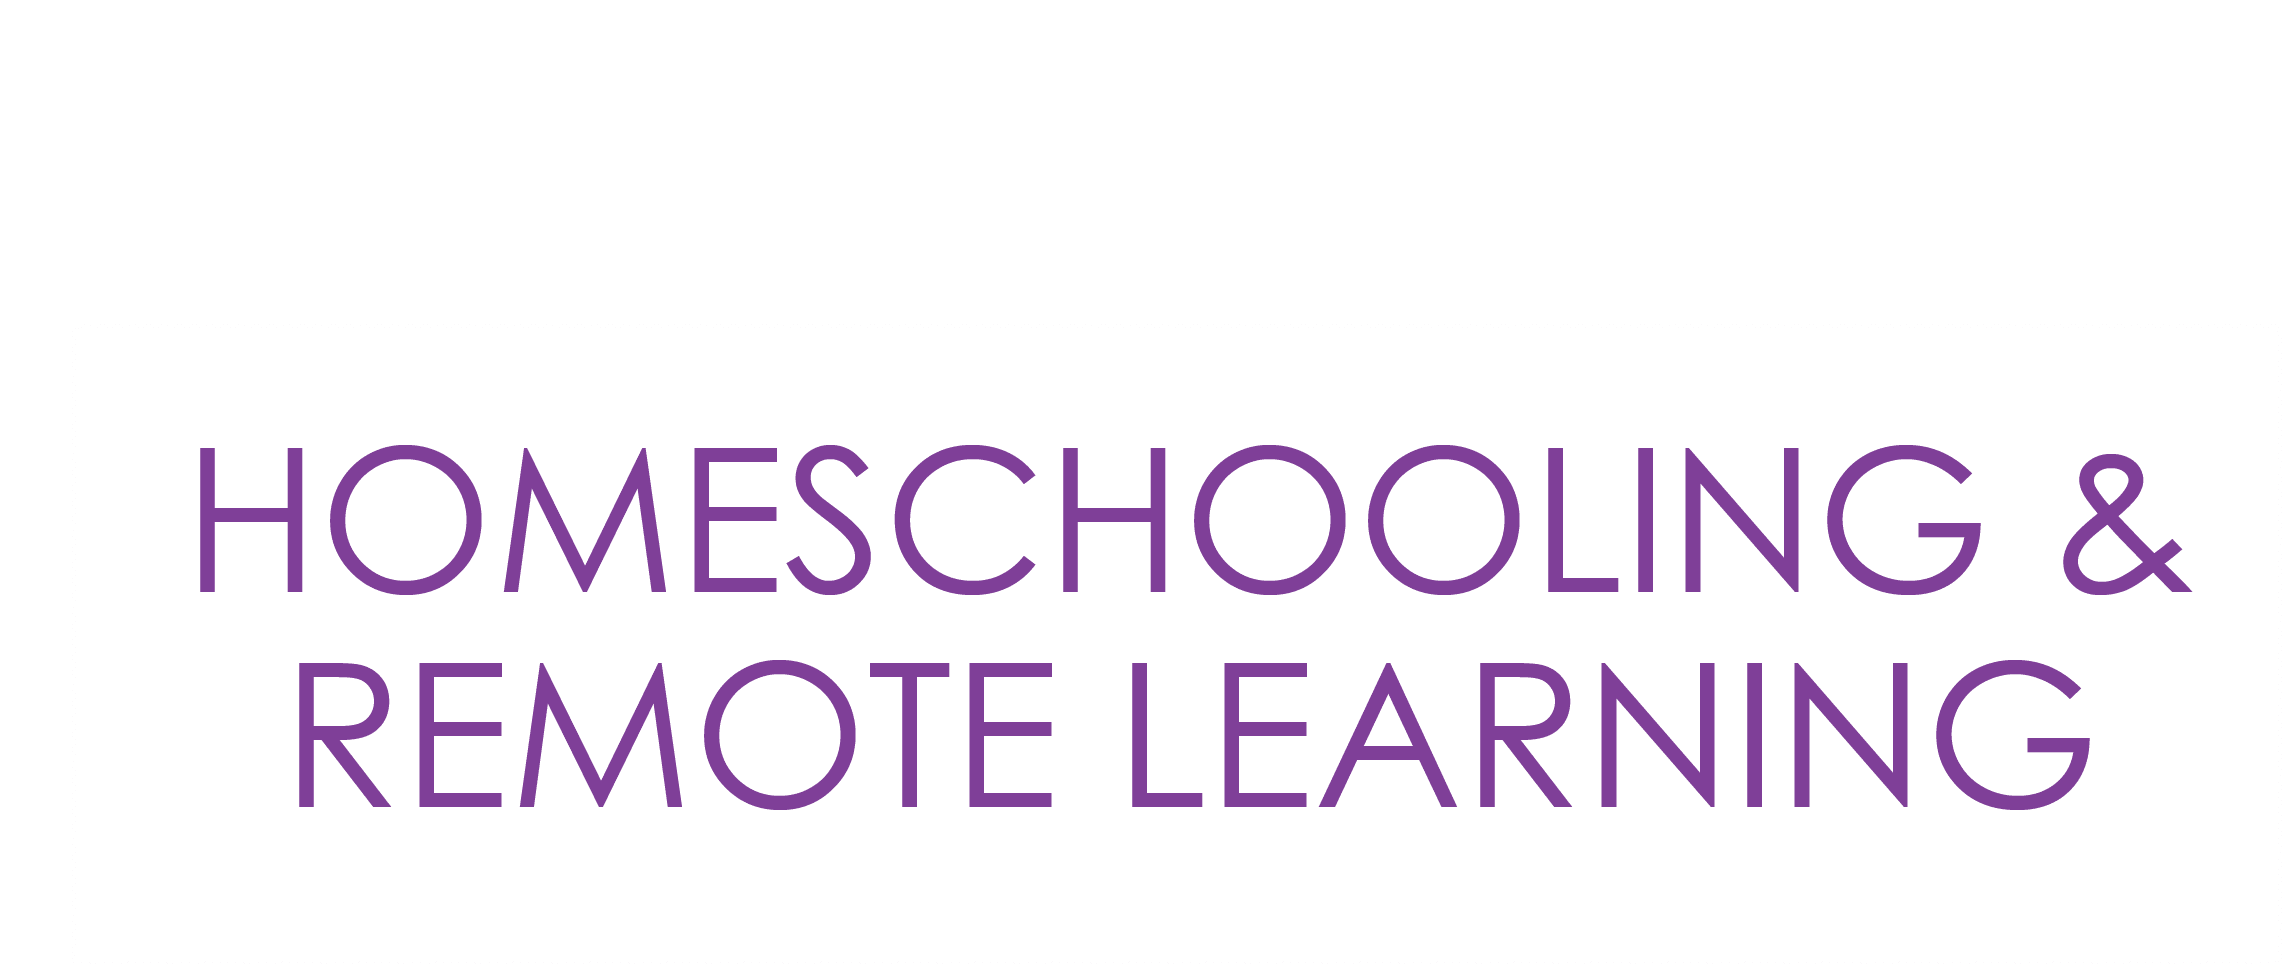 Homeschooling and remonte learning